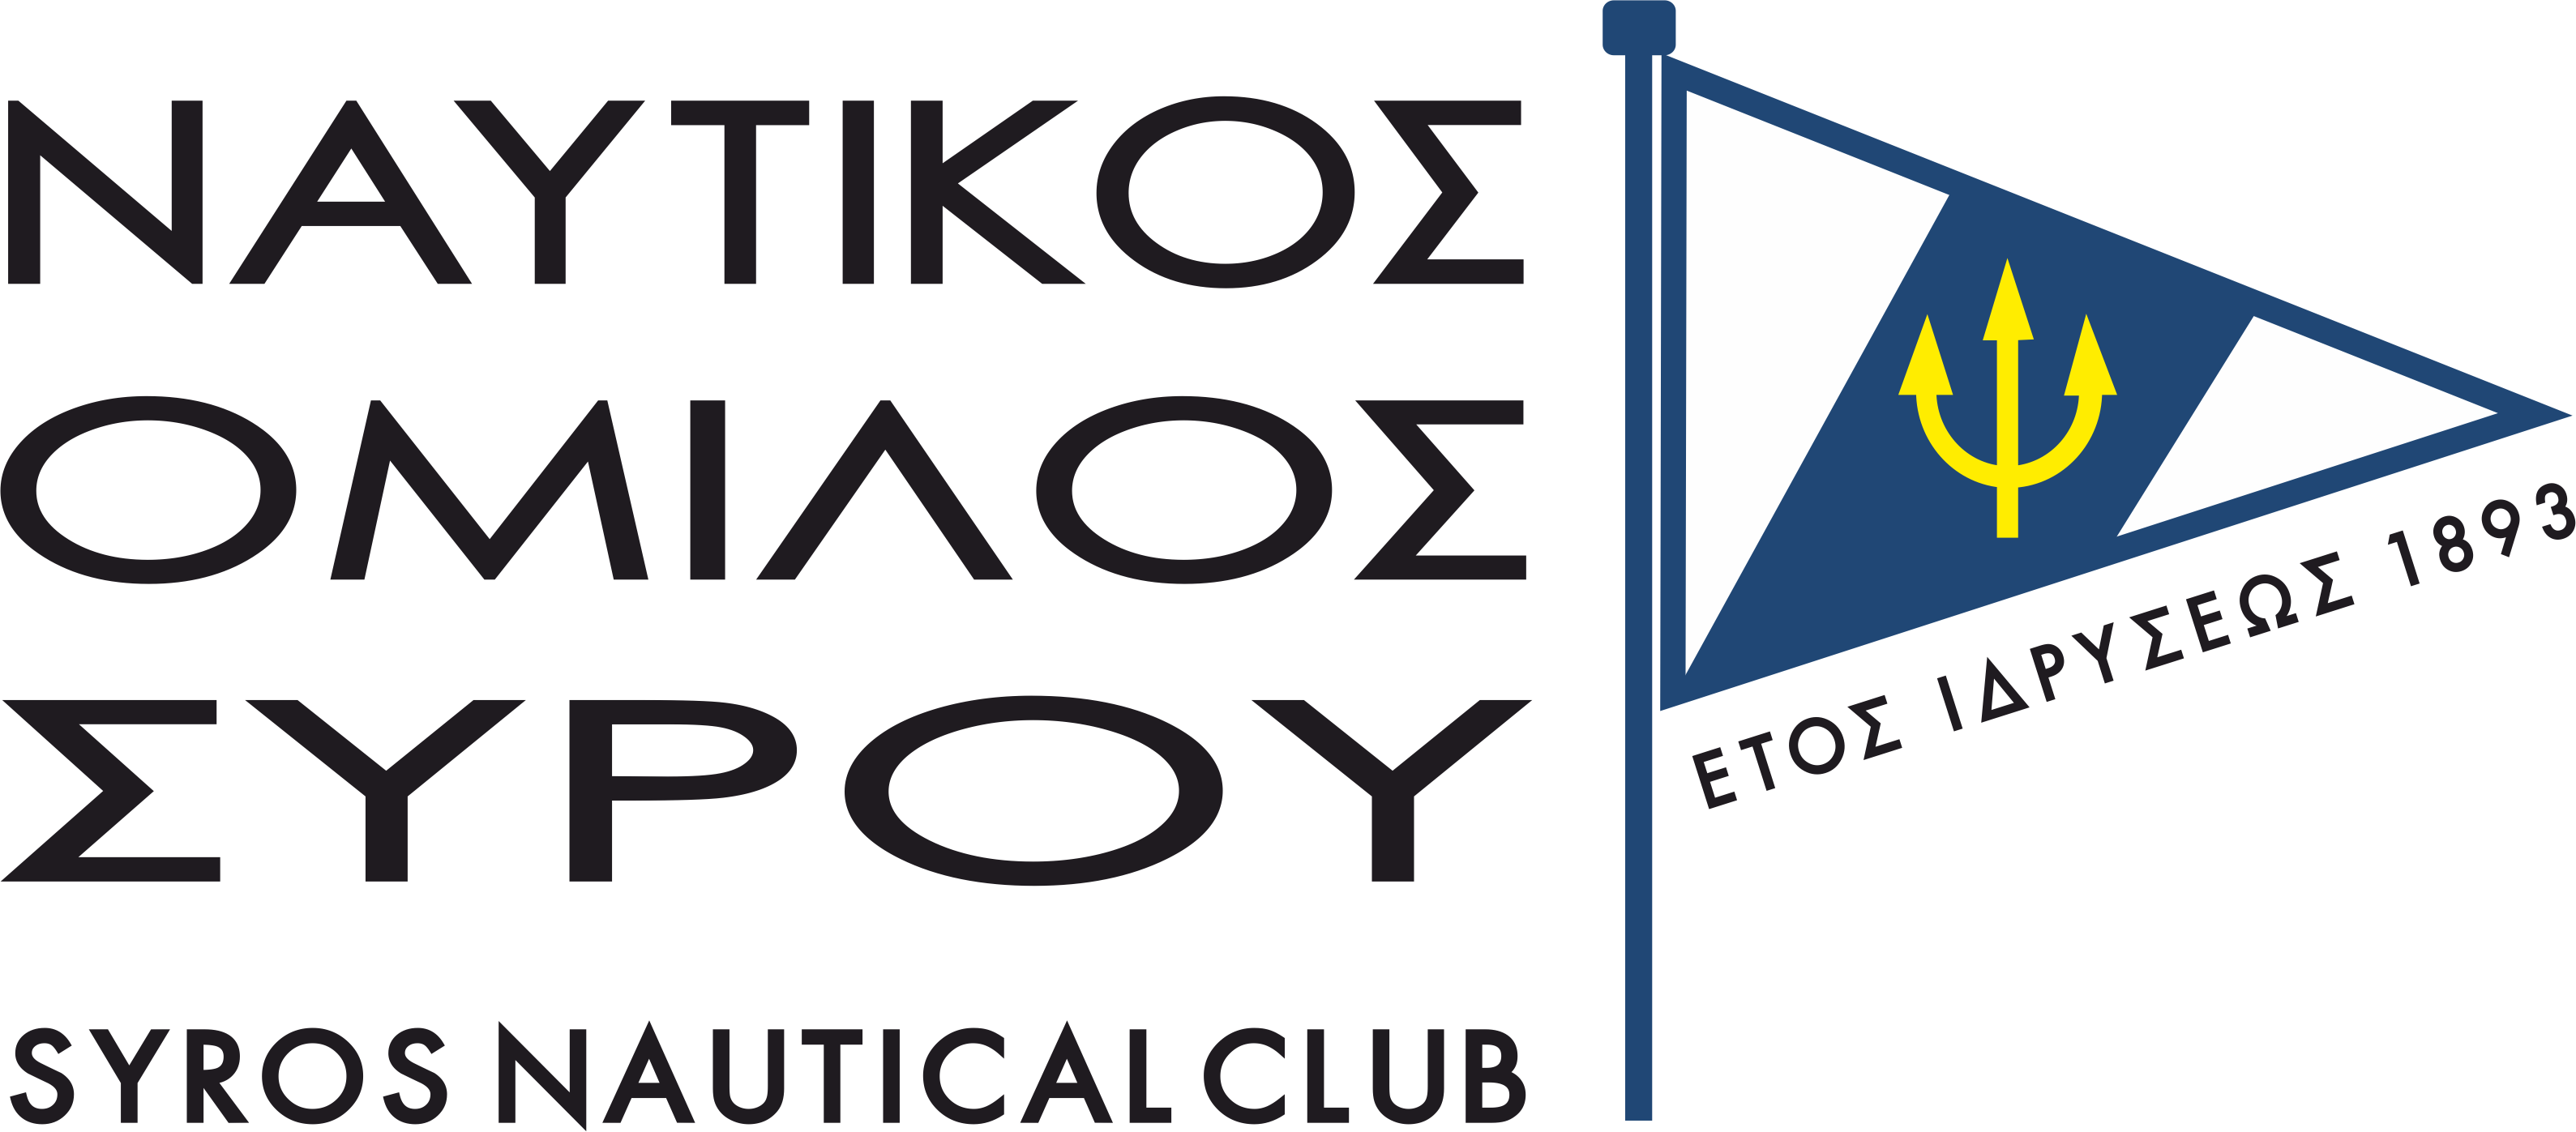 Syros Nautical Club